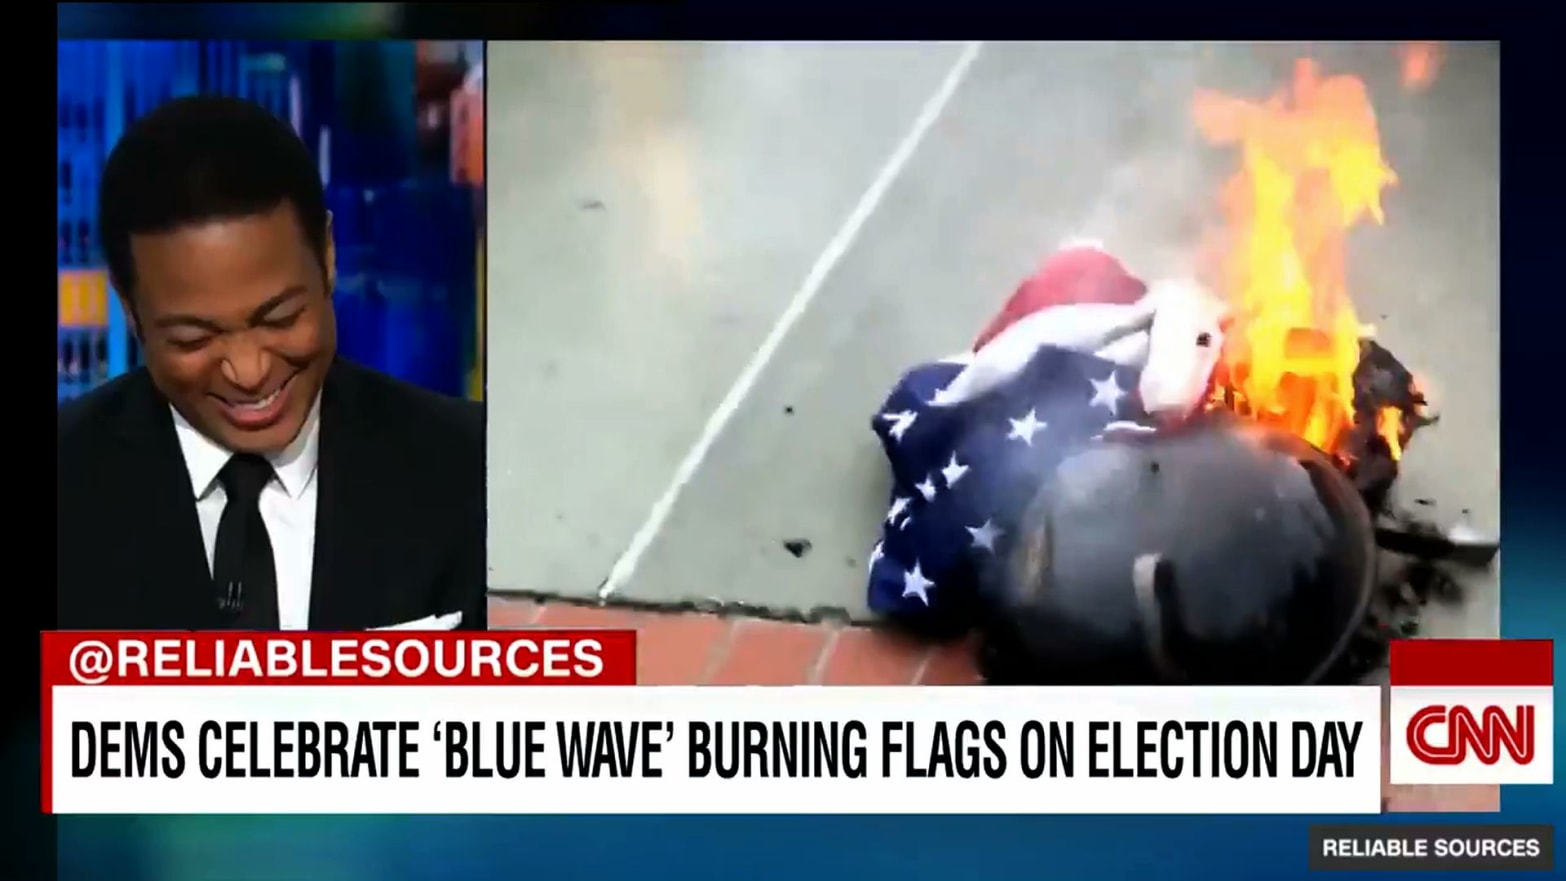 146ccf5fdc35 Election Hoax of Democrats Burning Flags to Celebrate 'Blue Wave' Goes  Viral on Twitter and Facebook